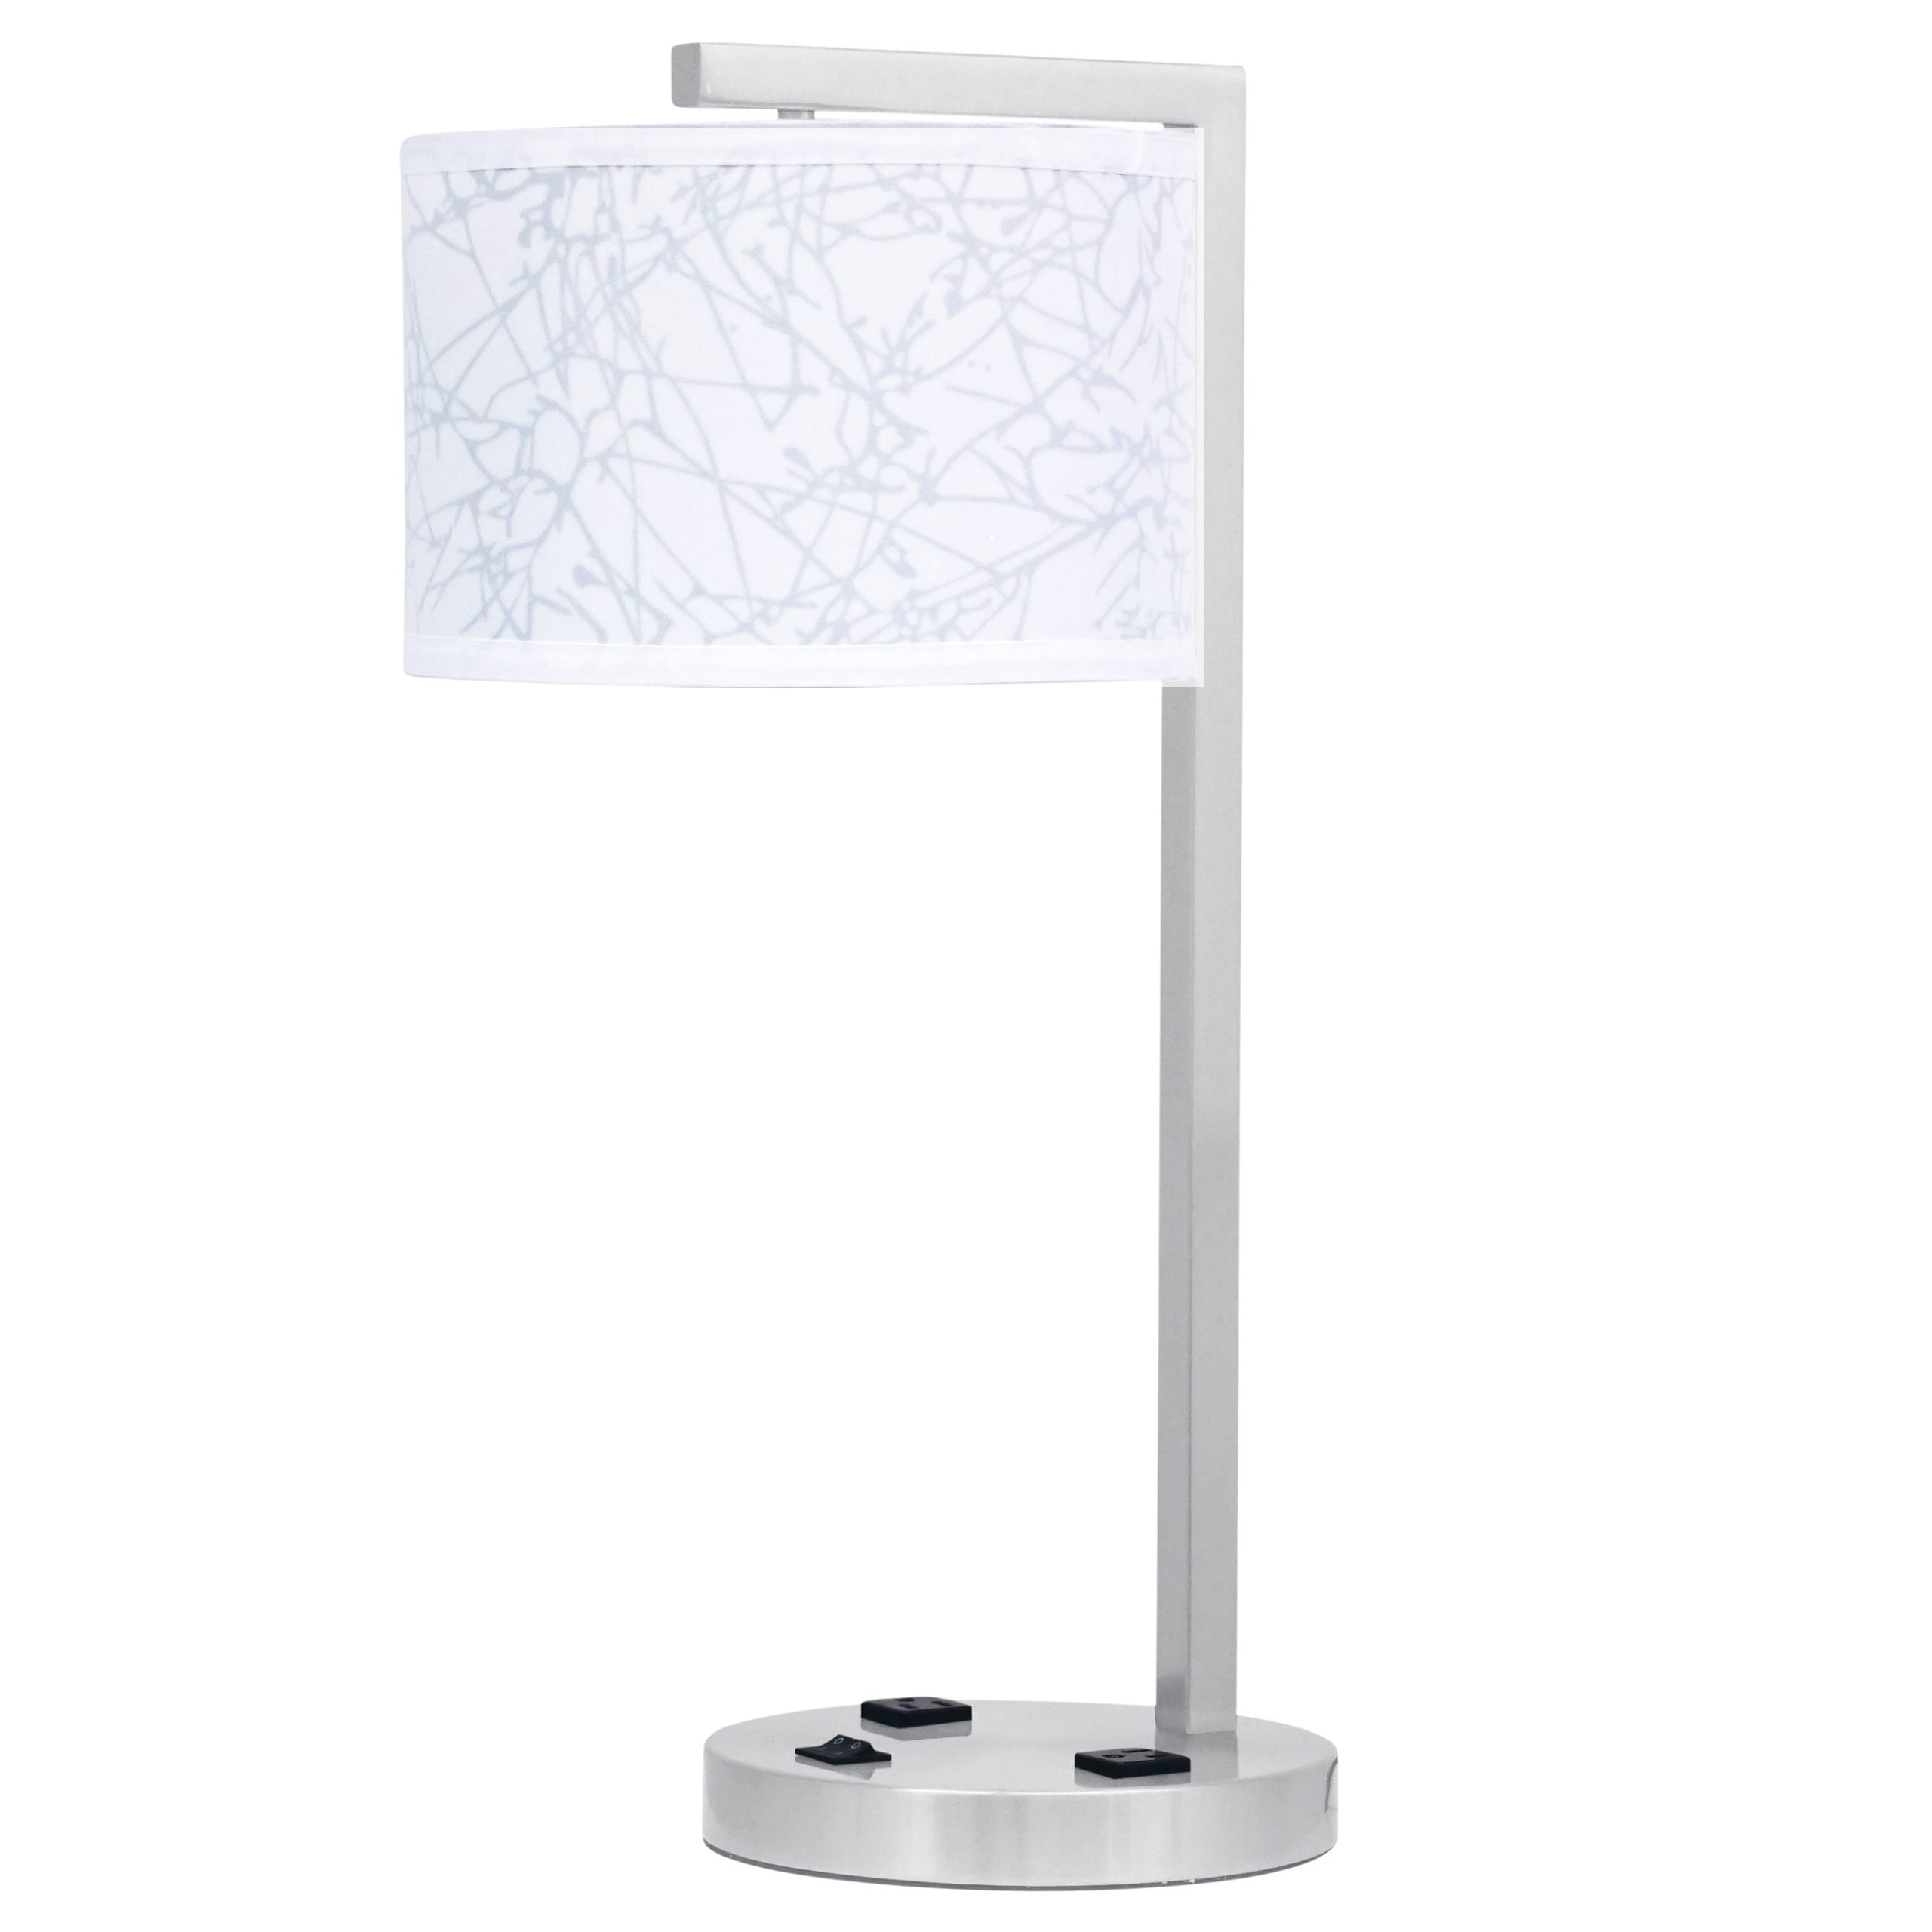 Mainstay Twin Table Lamp with 2 Outlets